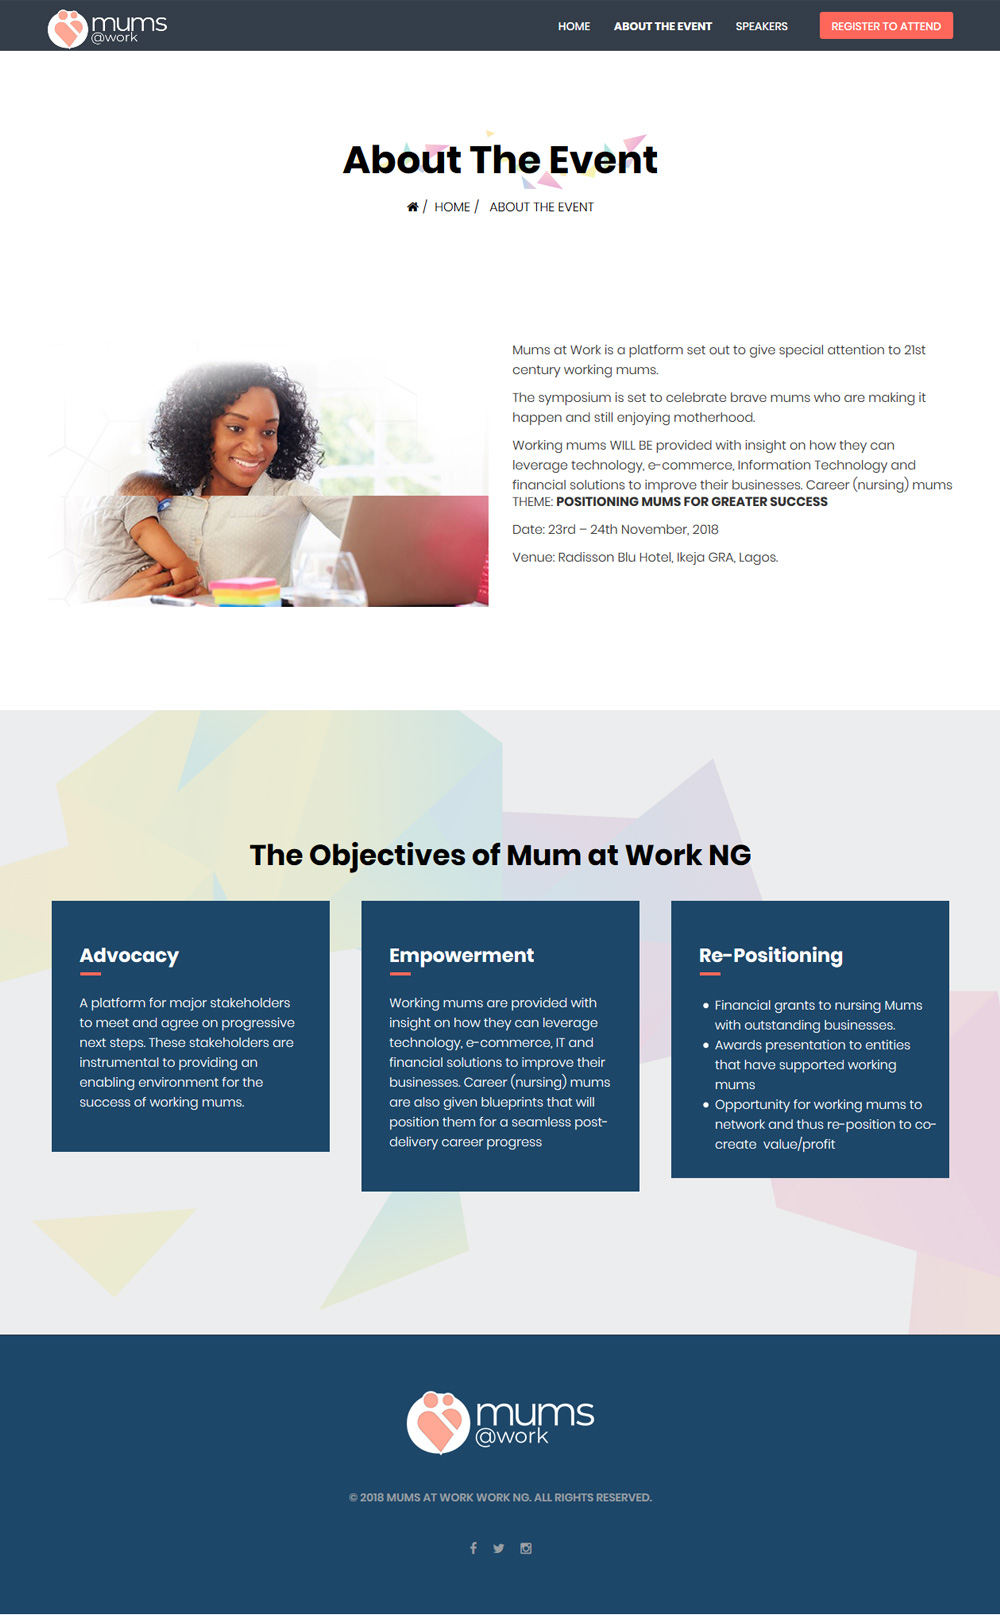 mums at work website home page